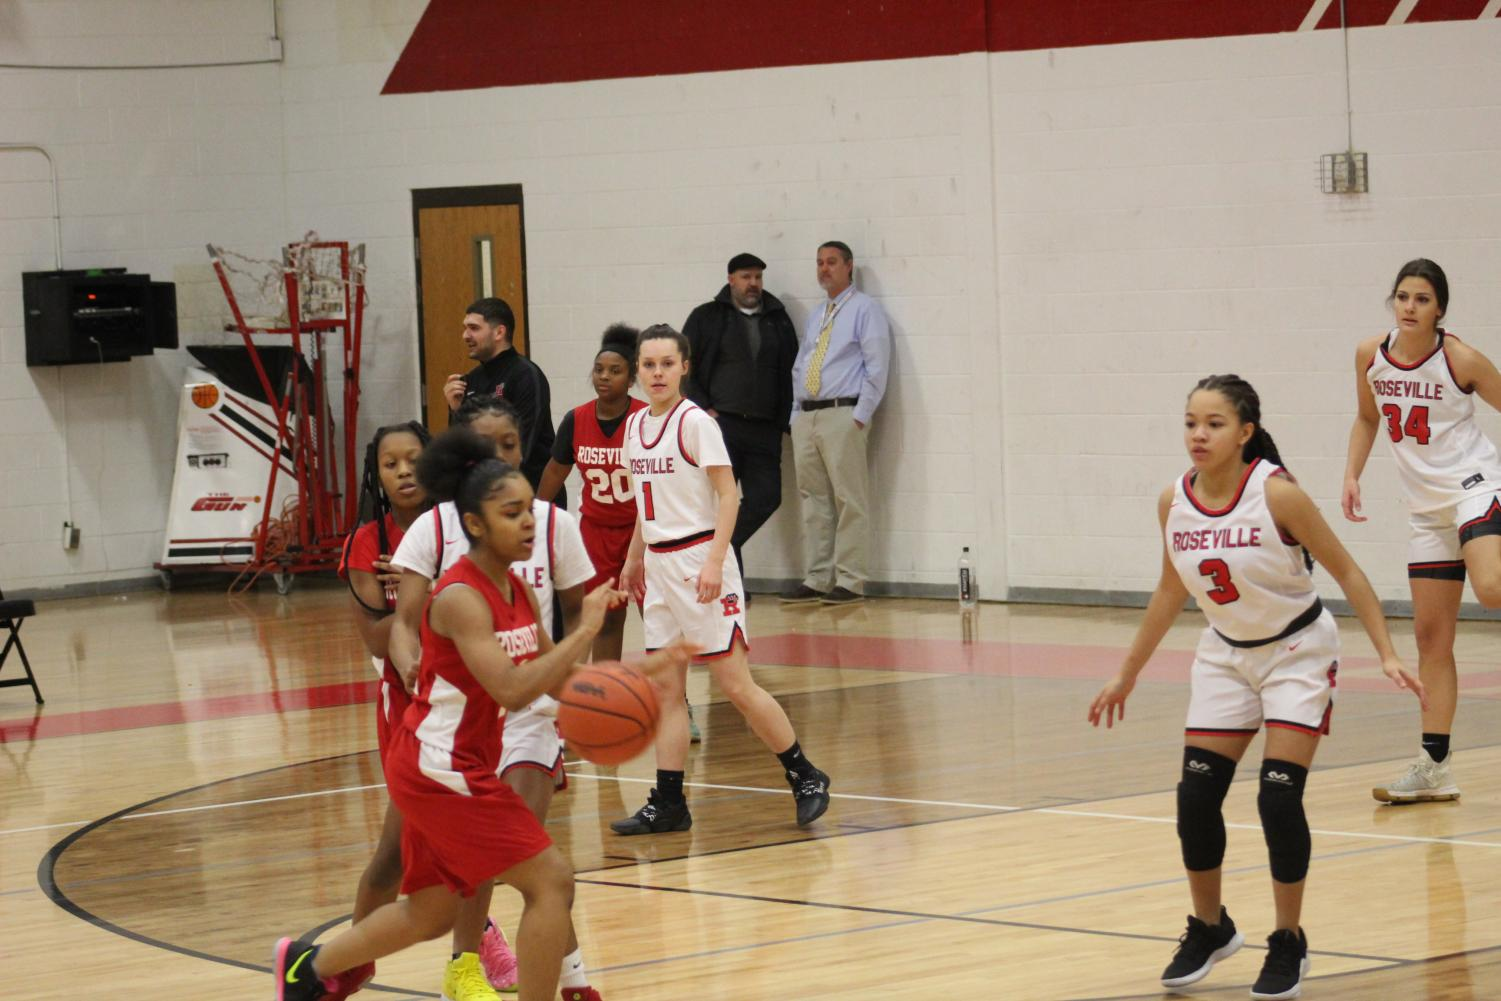 Saniah Love dribbling the ball to get ready to make a shot.